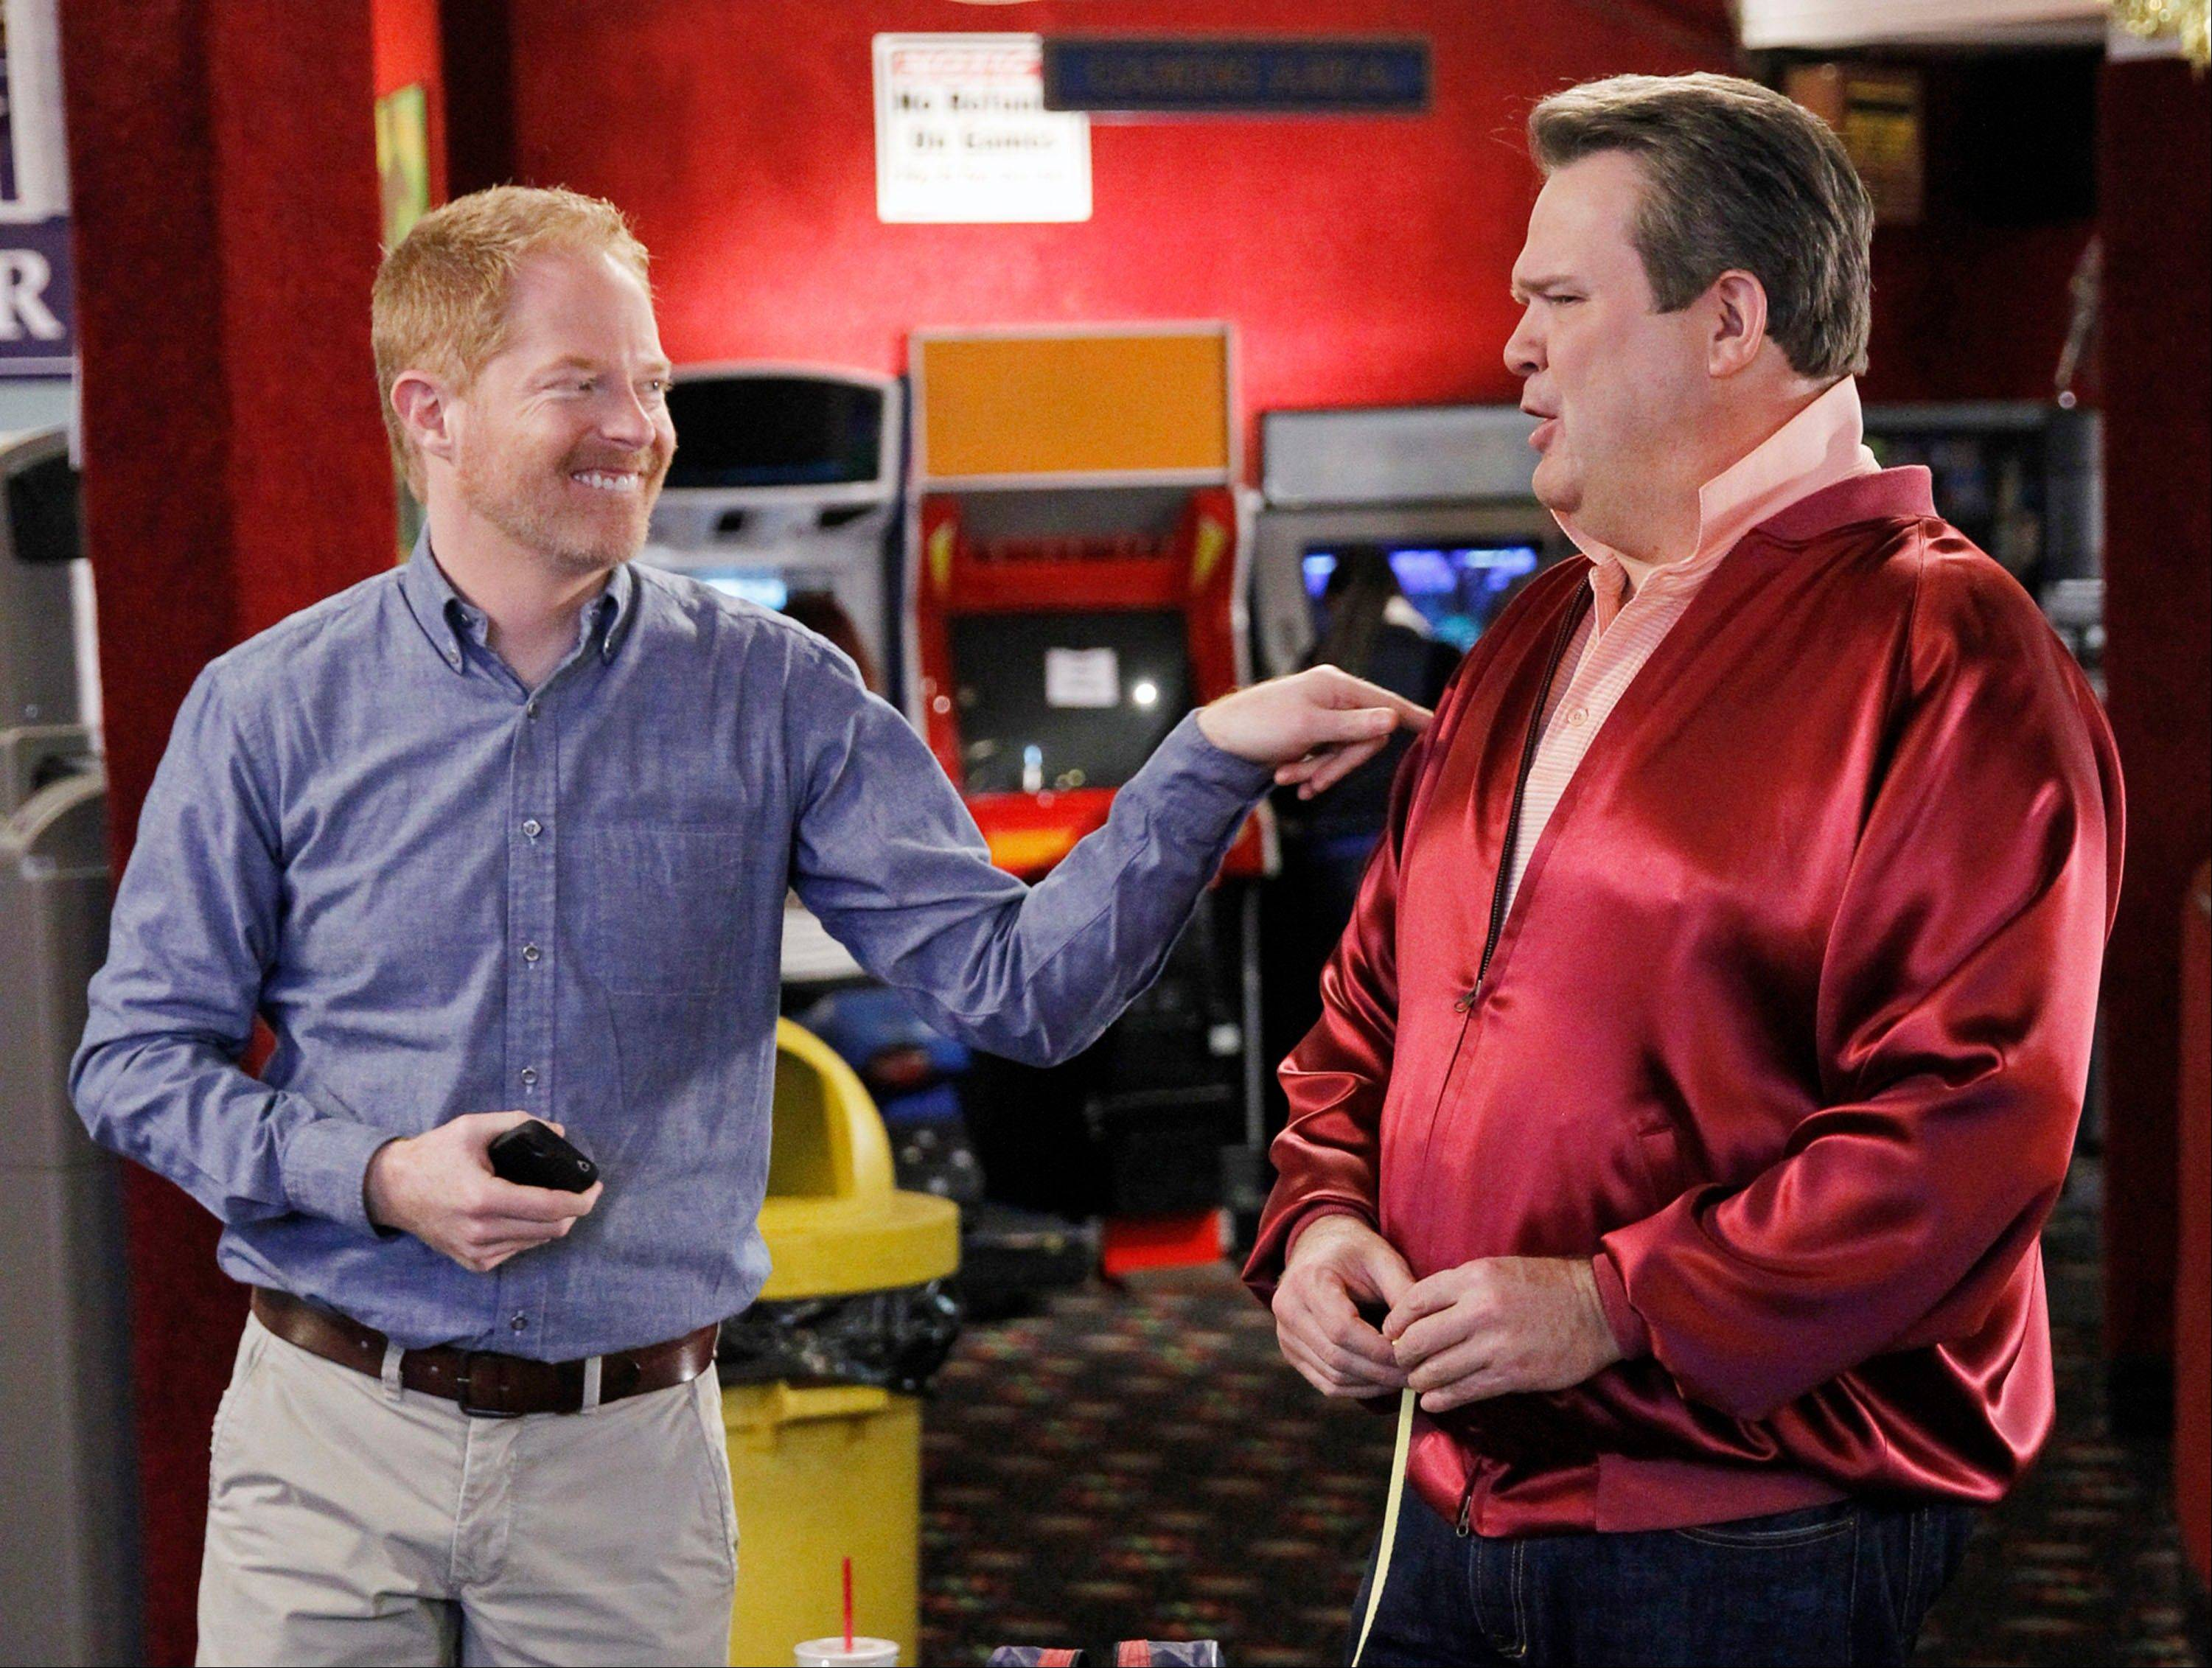 This TV publicity image released by ABC shows Eric Stonestreet, as Cameron, right, and Jesse Tyler Ferguson as Mitchell in a scene from the comedy �Modern Family.� While Fox broadcasts over the airwaves, if customers drop their pay-TV service and use Aereo, broadcasters would lose some of that revenue.